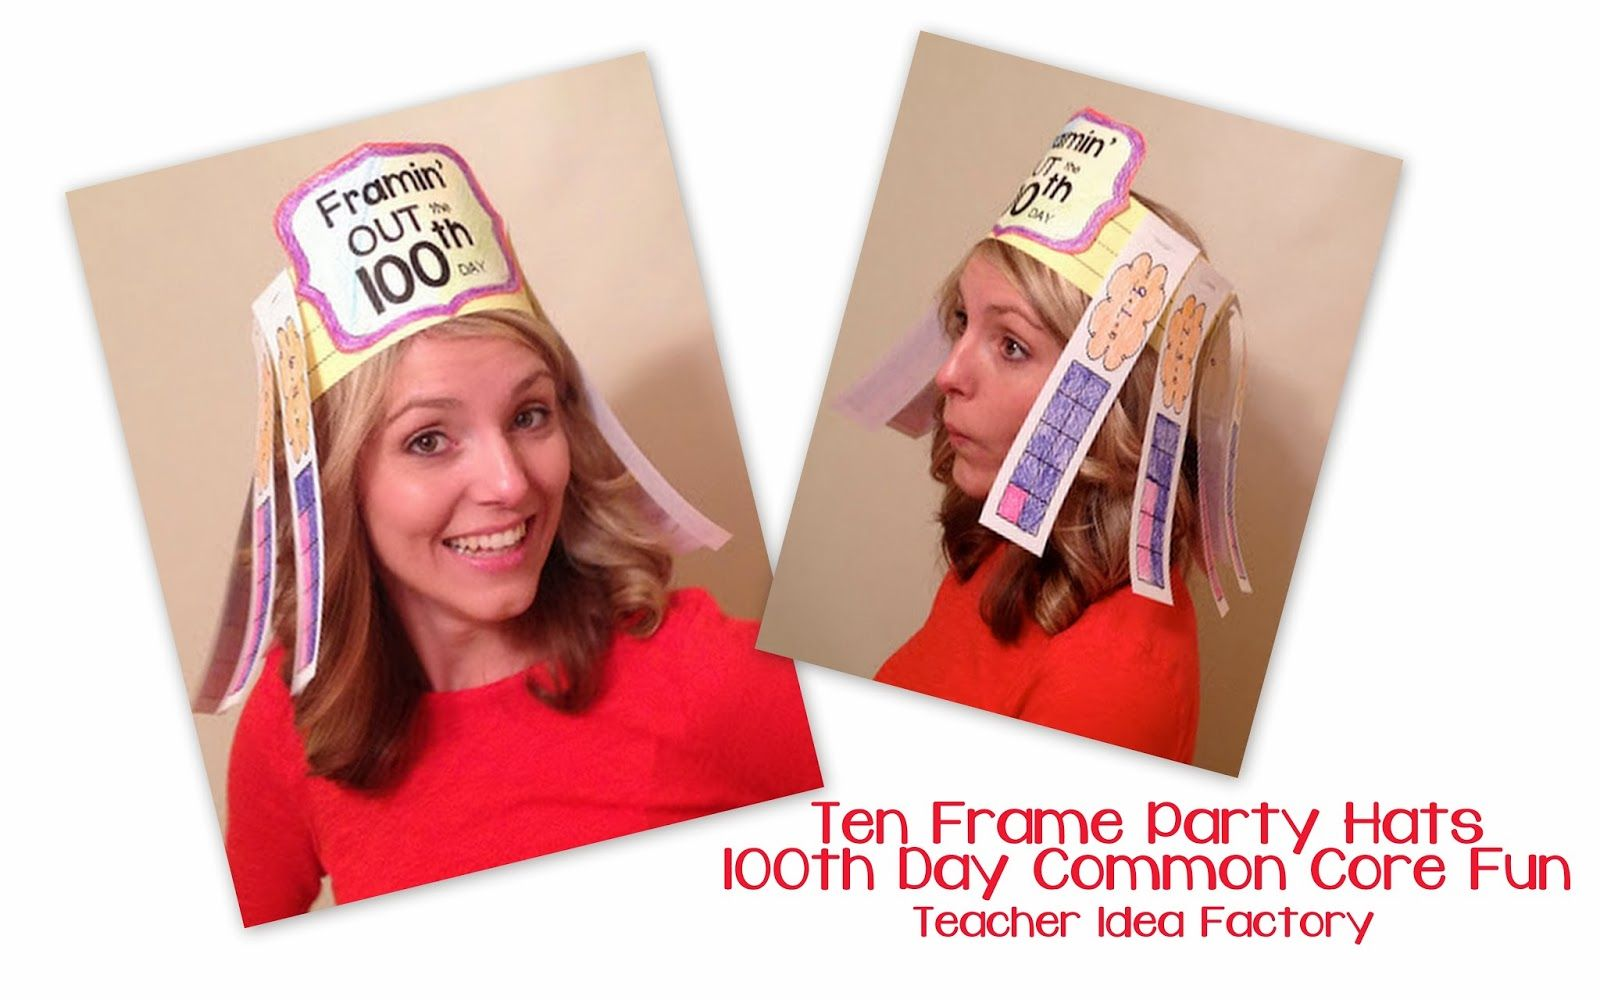 Party Hats For The 100th Day Using Ten Frames And